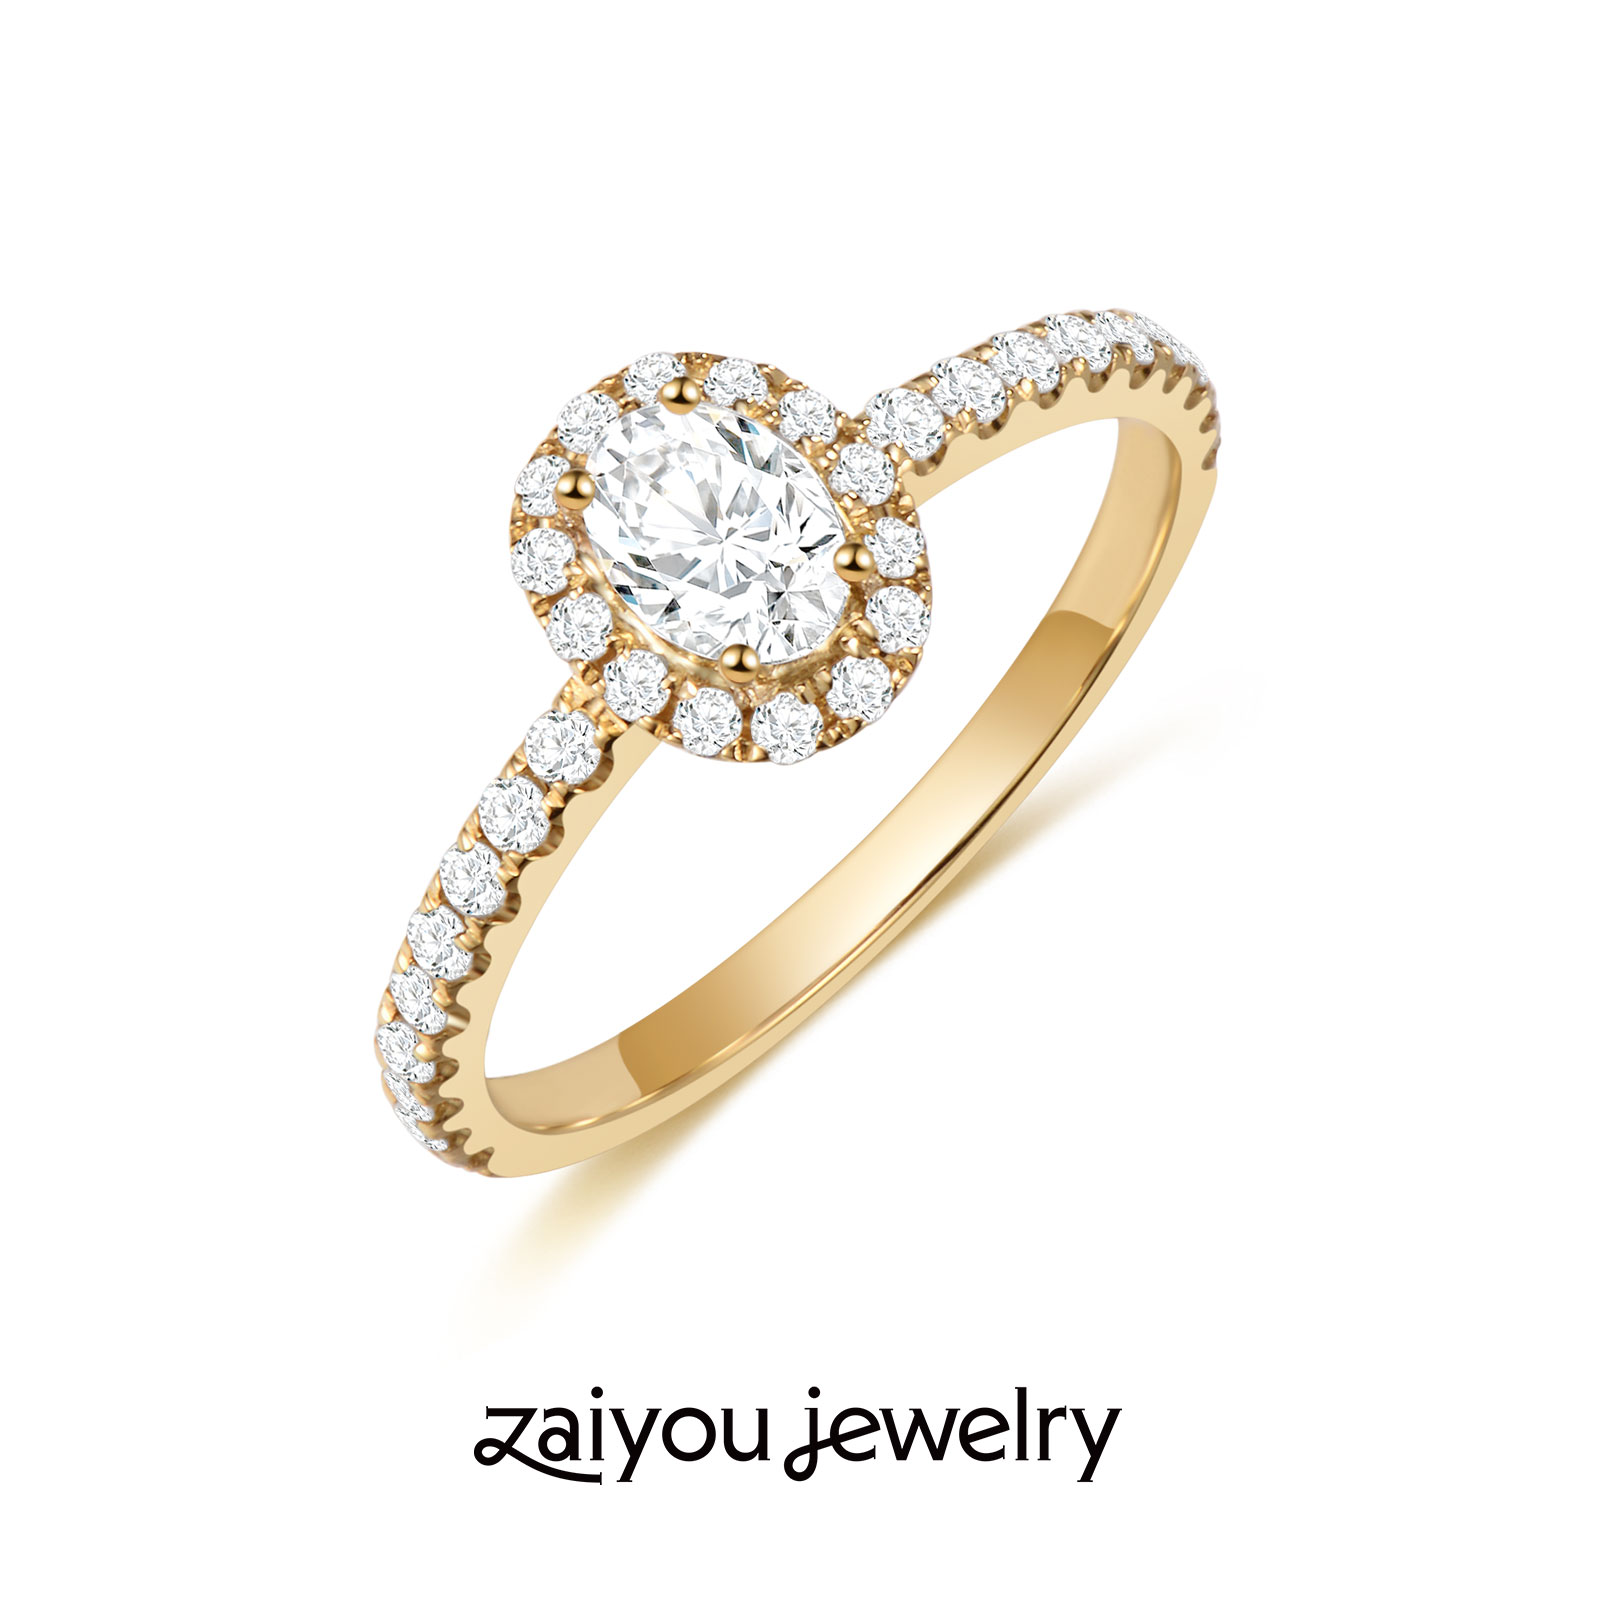 [fireworks] 30 point oval synthetic diamond ring